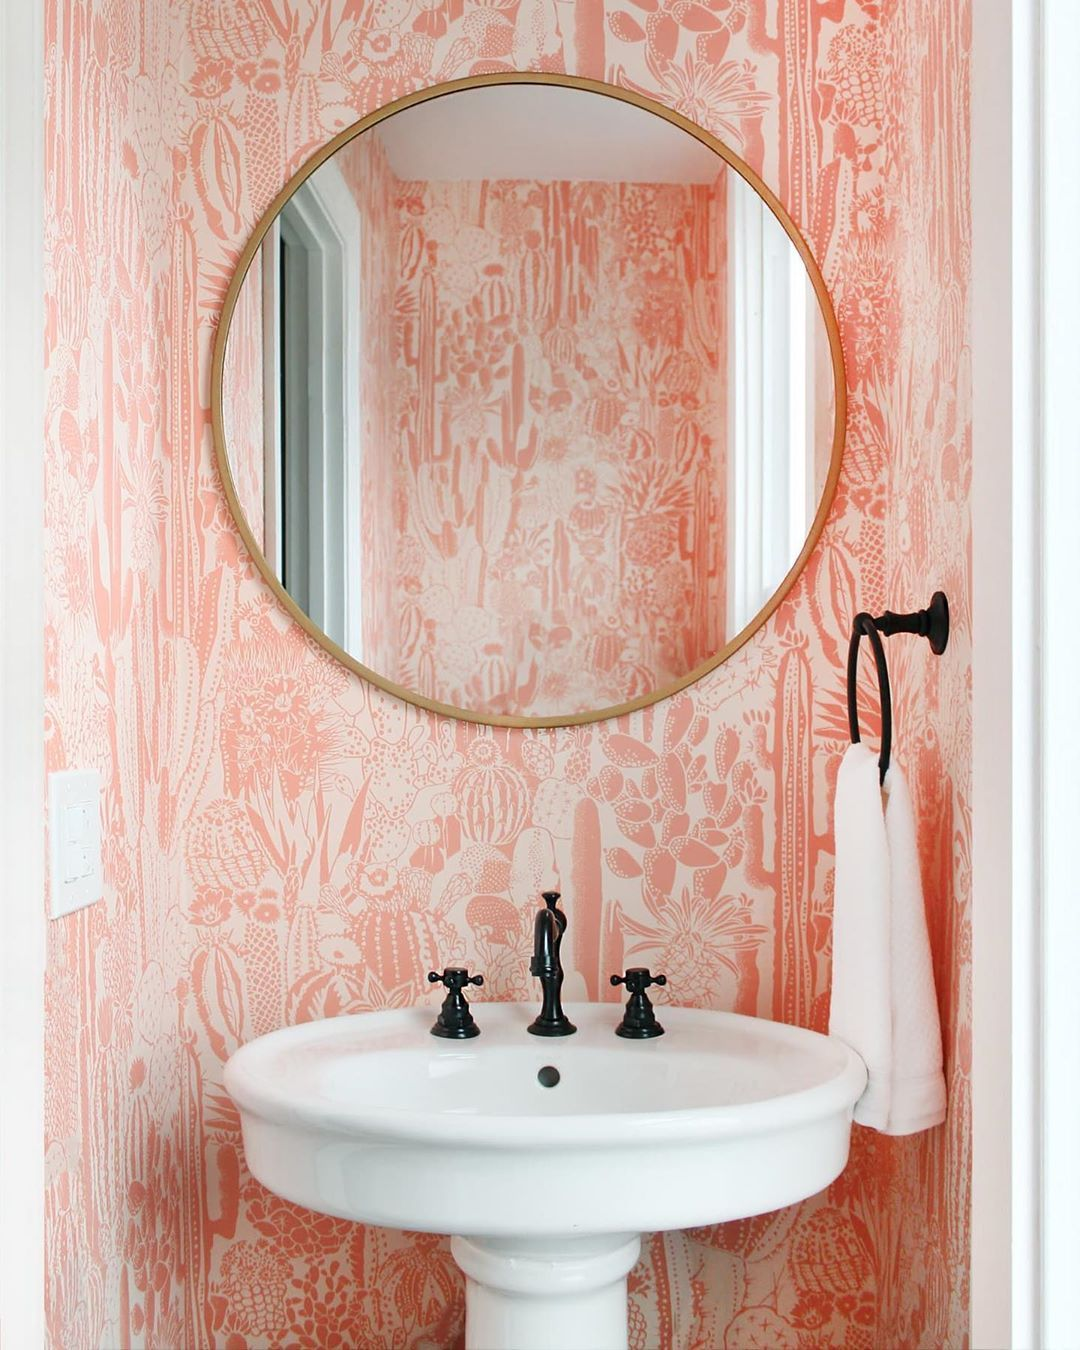 We have so much love for bathrooms with unique wallpaper 🤩🤩🤩(Image: @pratt_deutsch_interiors ; Home: @andreaisabellelucas). Click the image to try our free home design app.  (Keywords: bathroom remodel, small bathroom ideas, bathroom ideas, bathroom decor, dream room, room ideas, bathroom painting ideas, bathroom shelf, bathroom color, bathroom organization ideas, bathtub, beautiful homes)